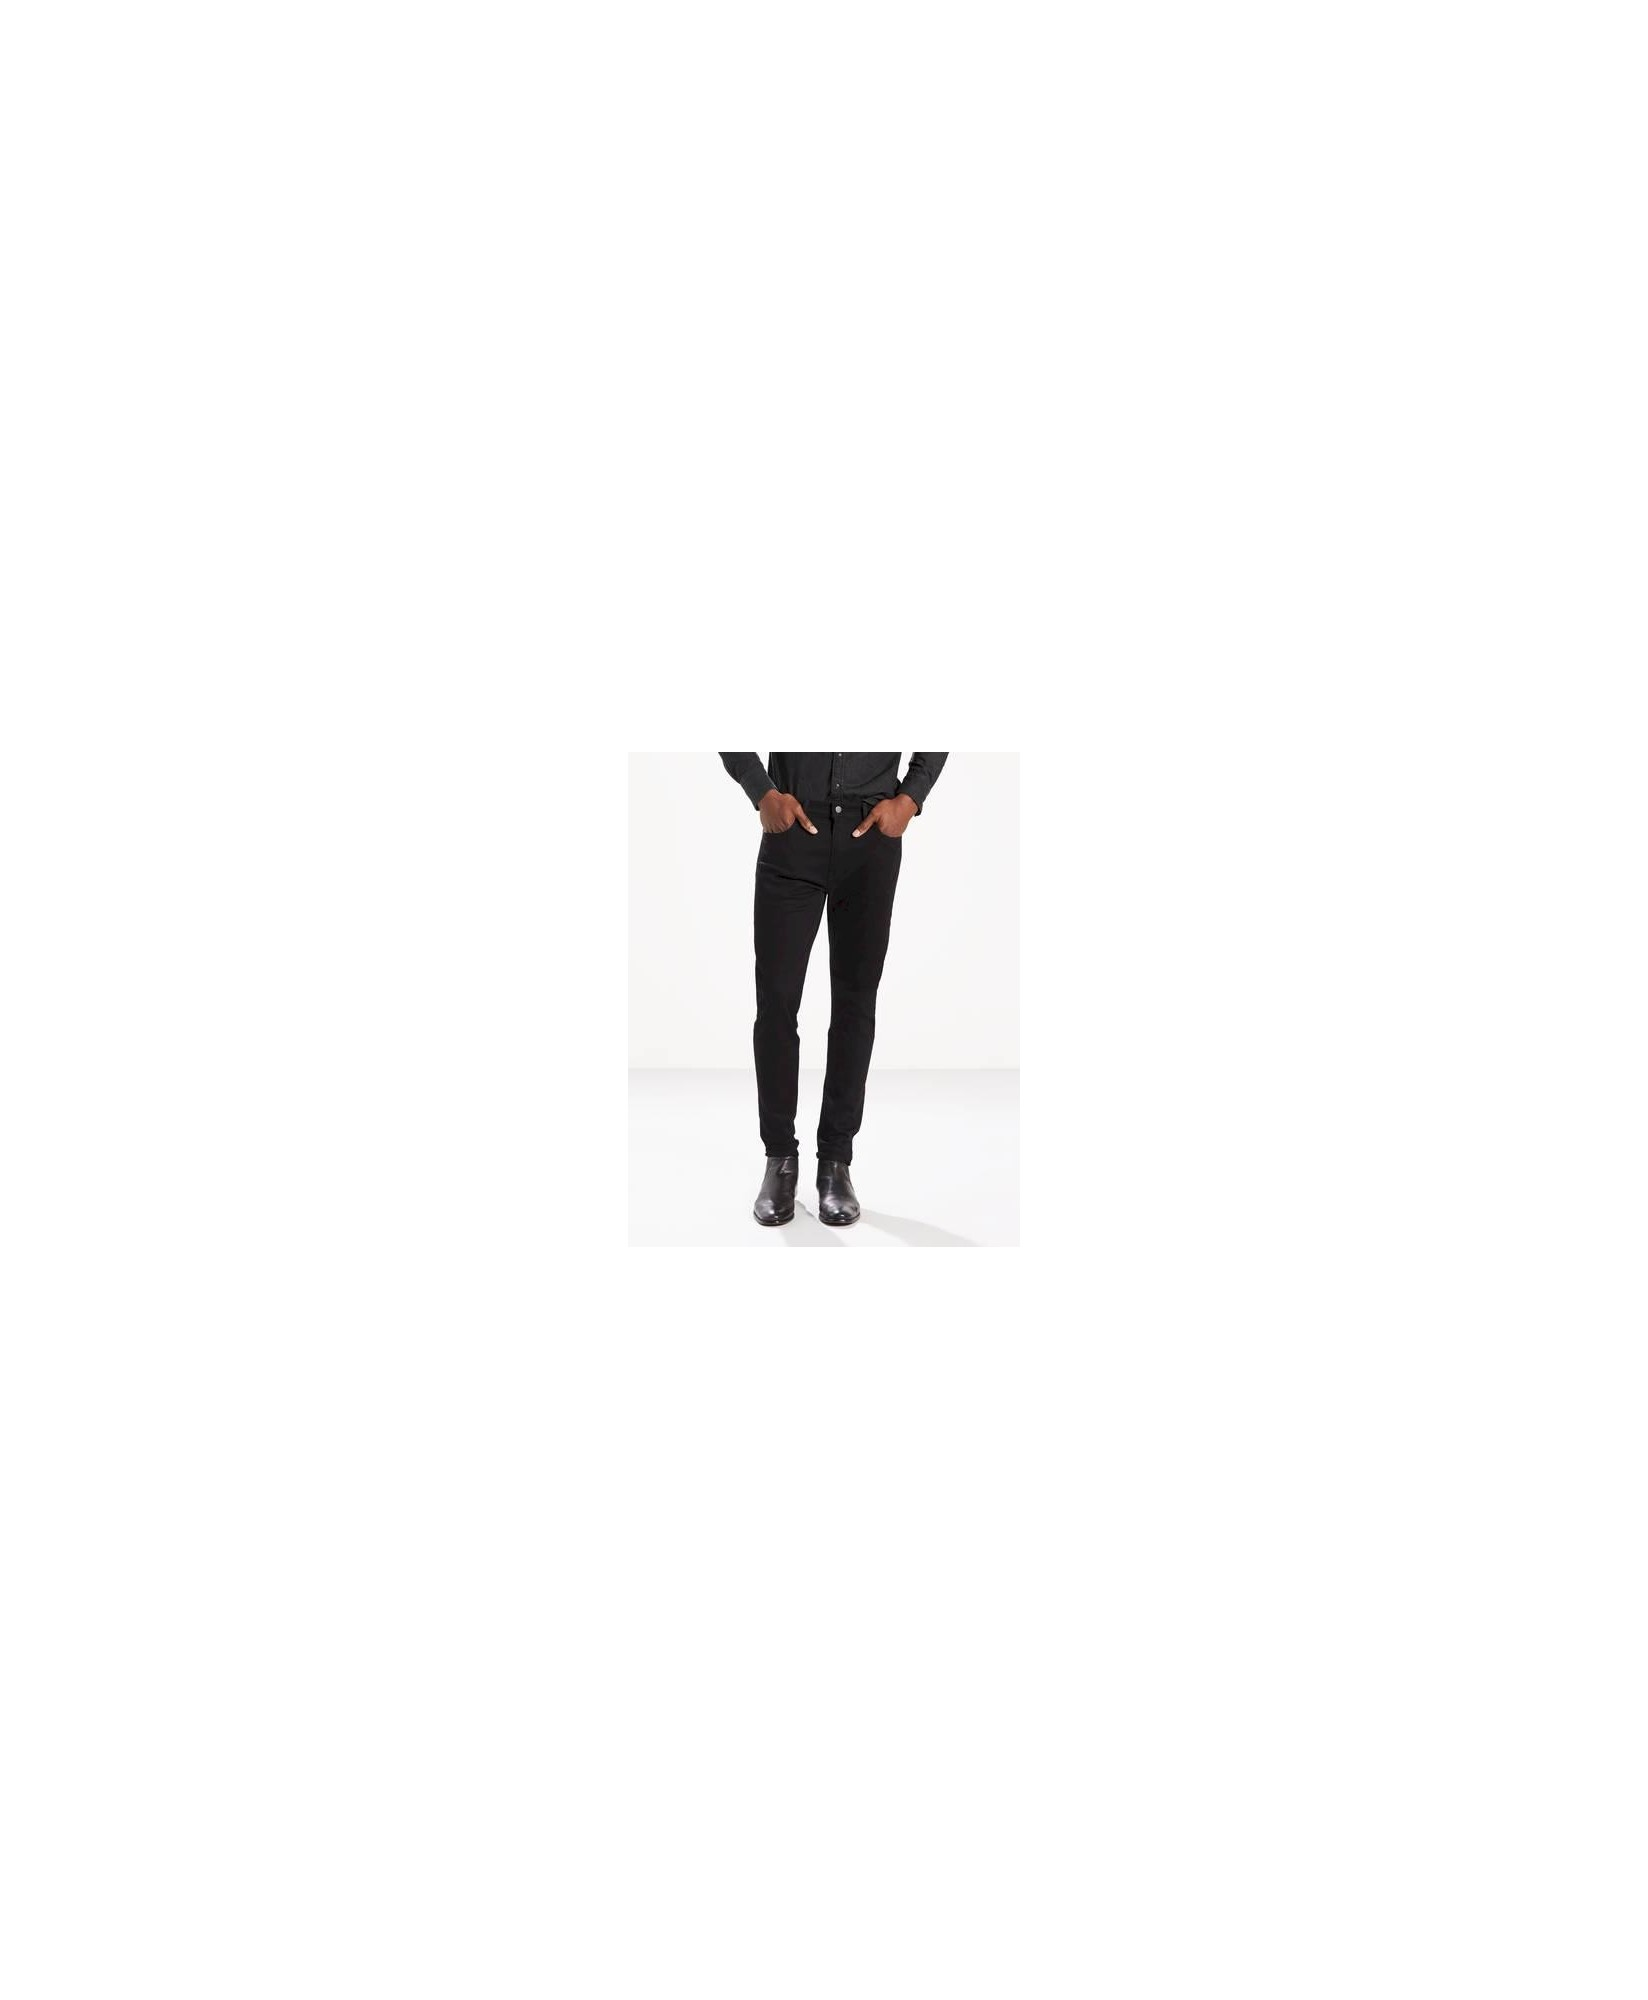 512™ SLIM TAPER FIT JEANS 512™ SLIM TAPER FIT JEANS